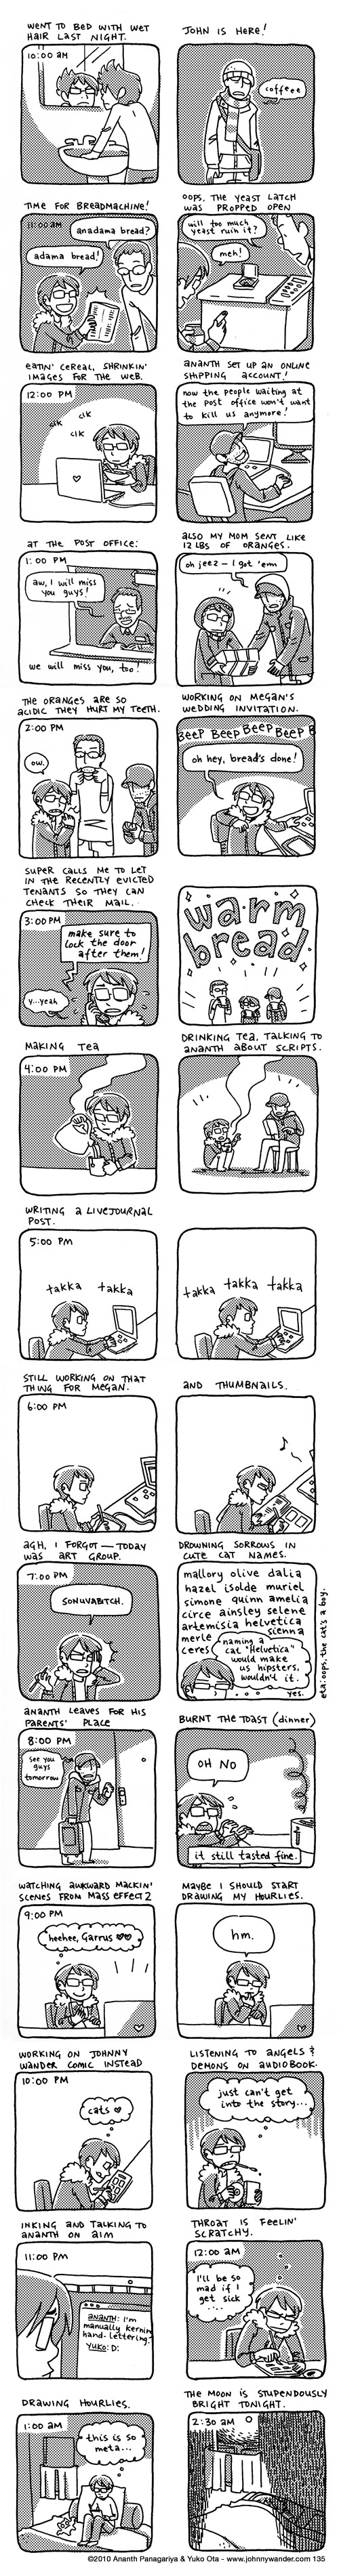 135 - hourly comics: february 1st 2010